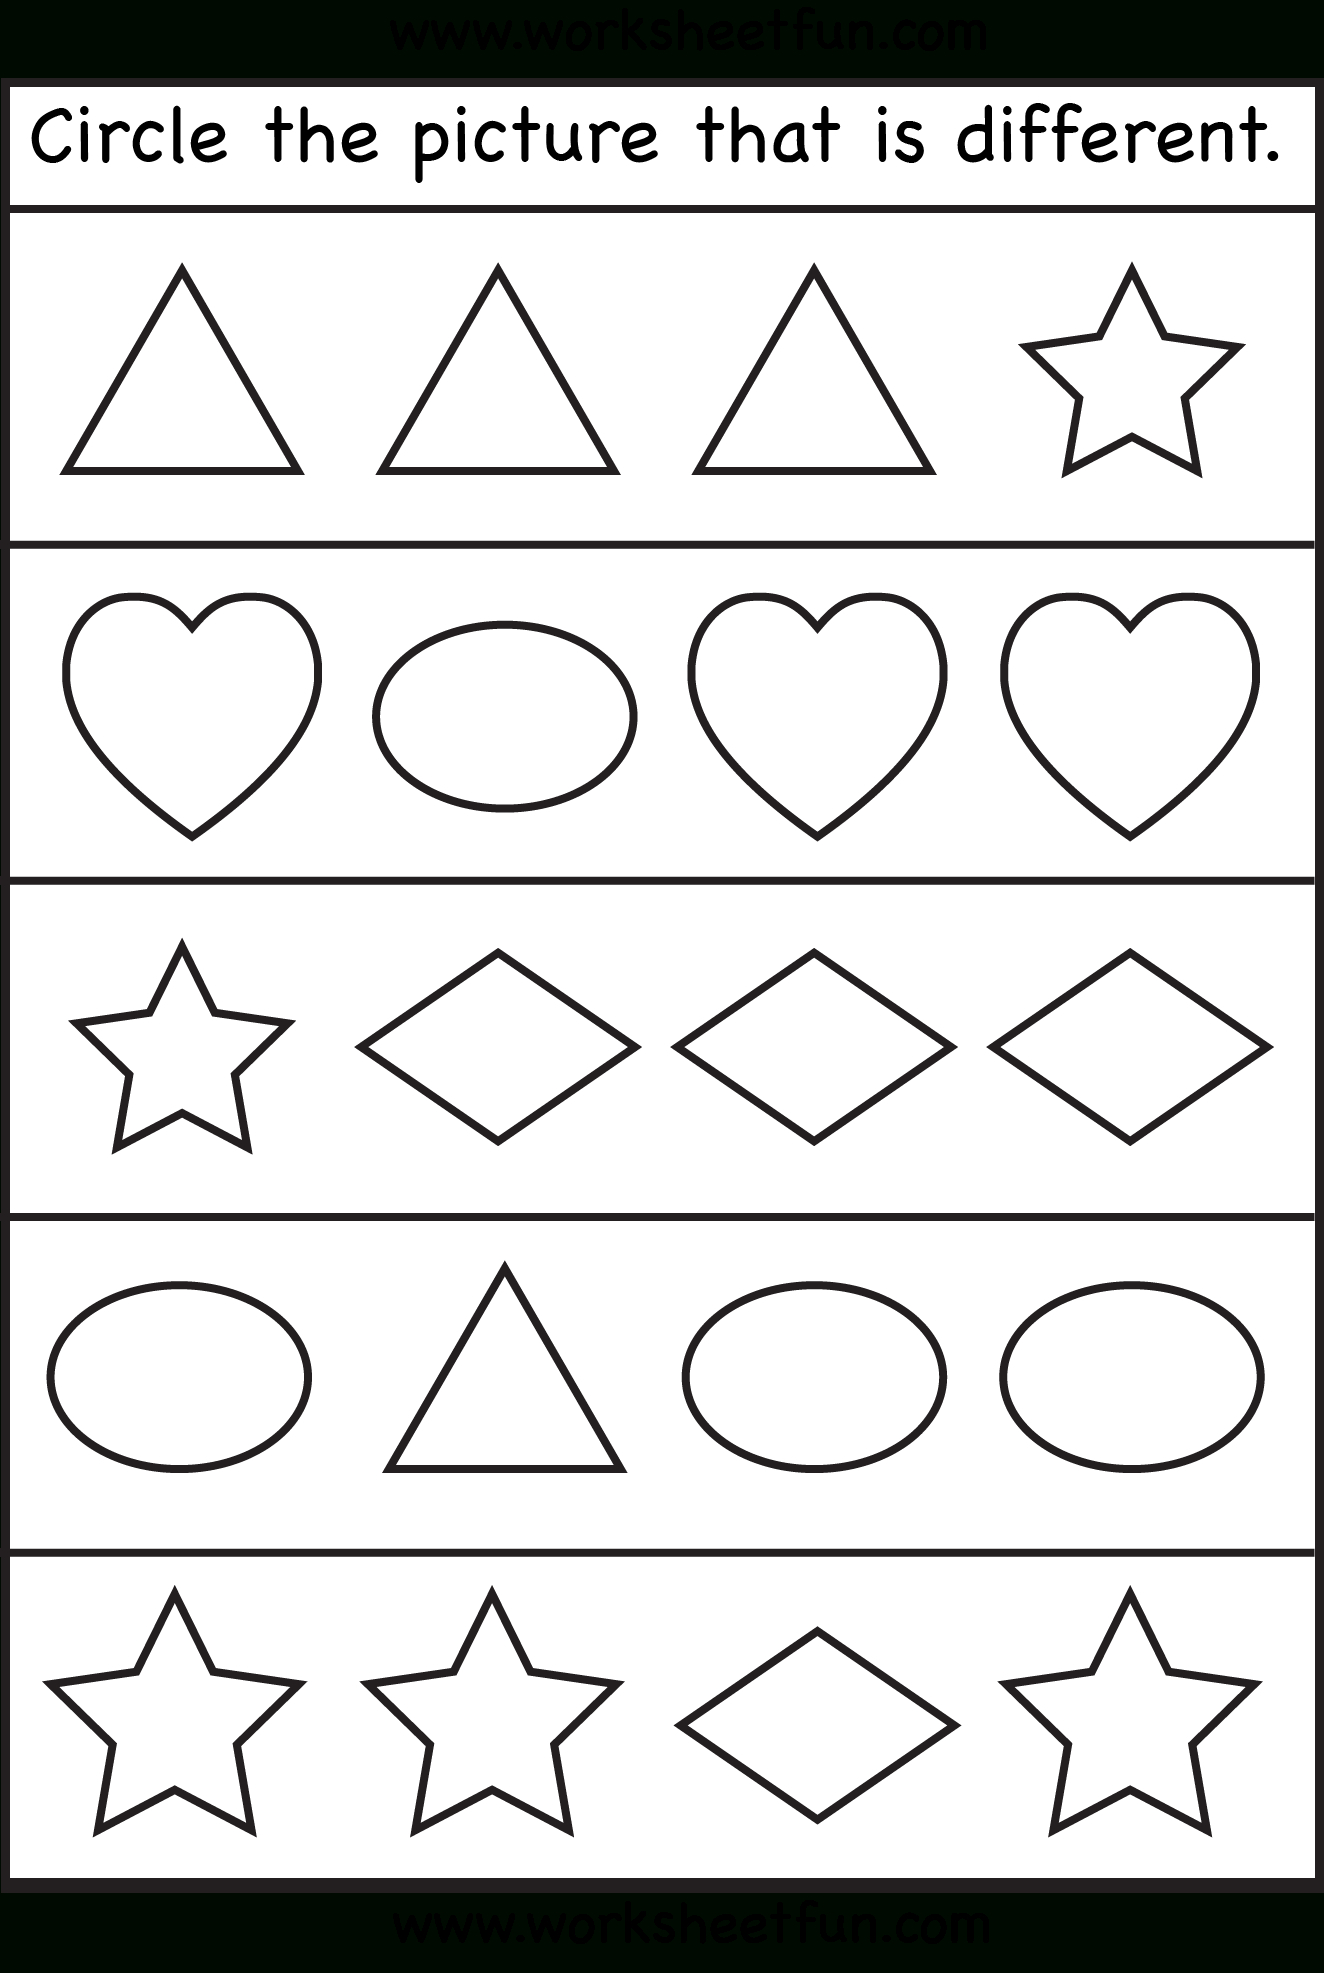 Circle The Picture That Is Different – 1 Worksheet / Free Printable - Free Printable Same And Different Worksheets